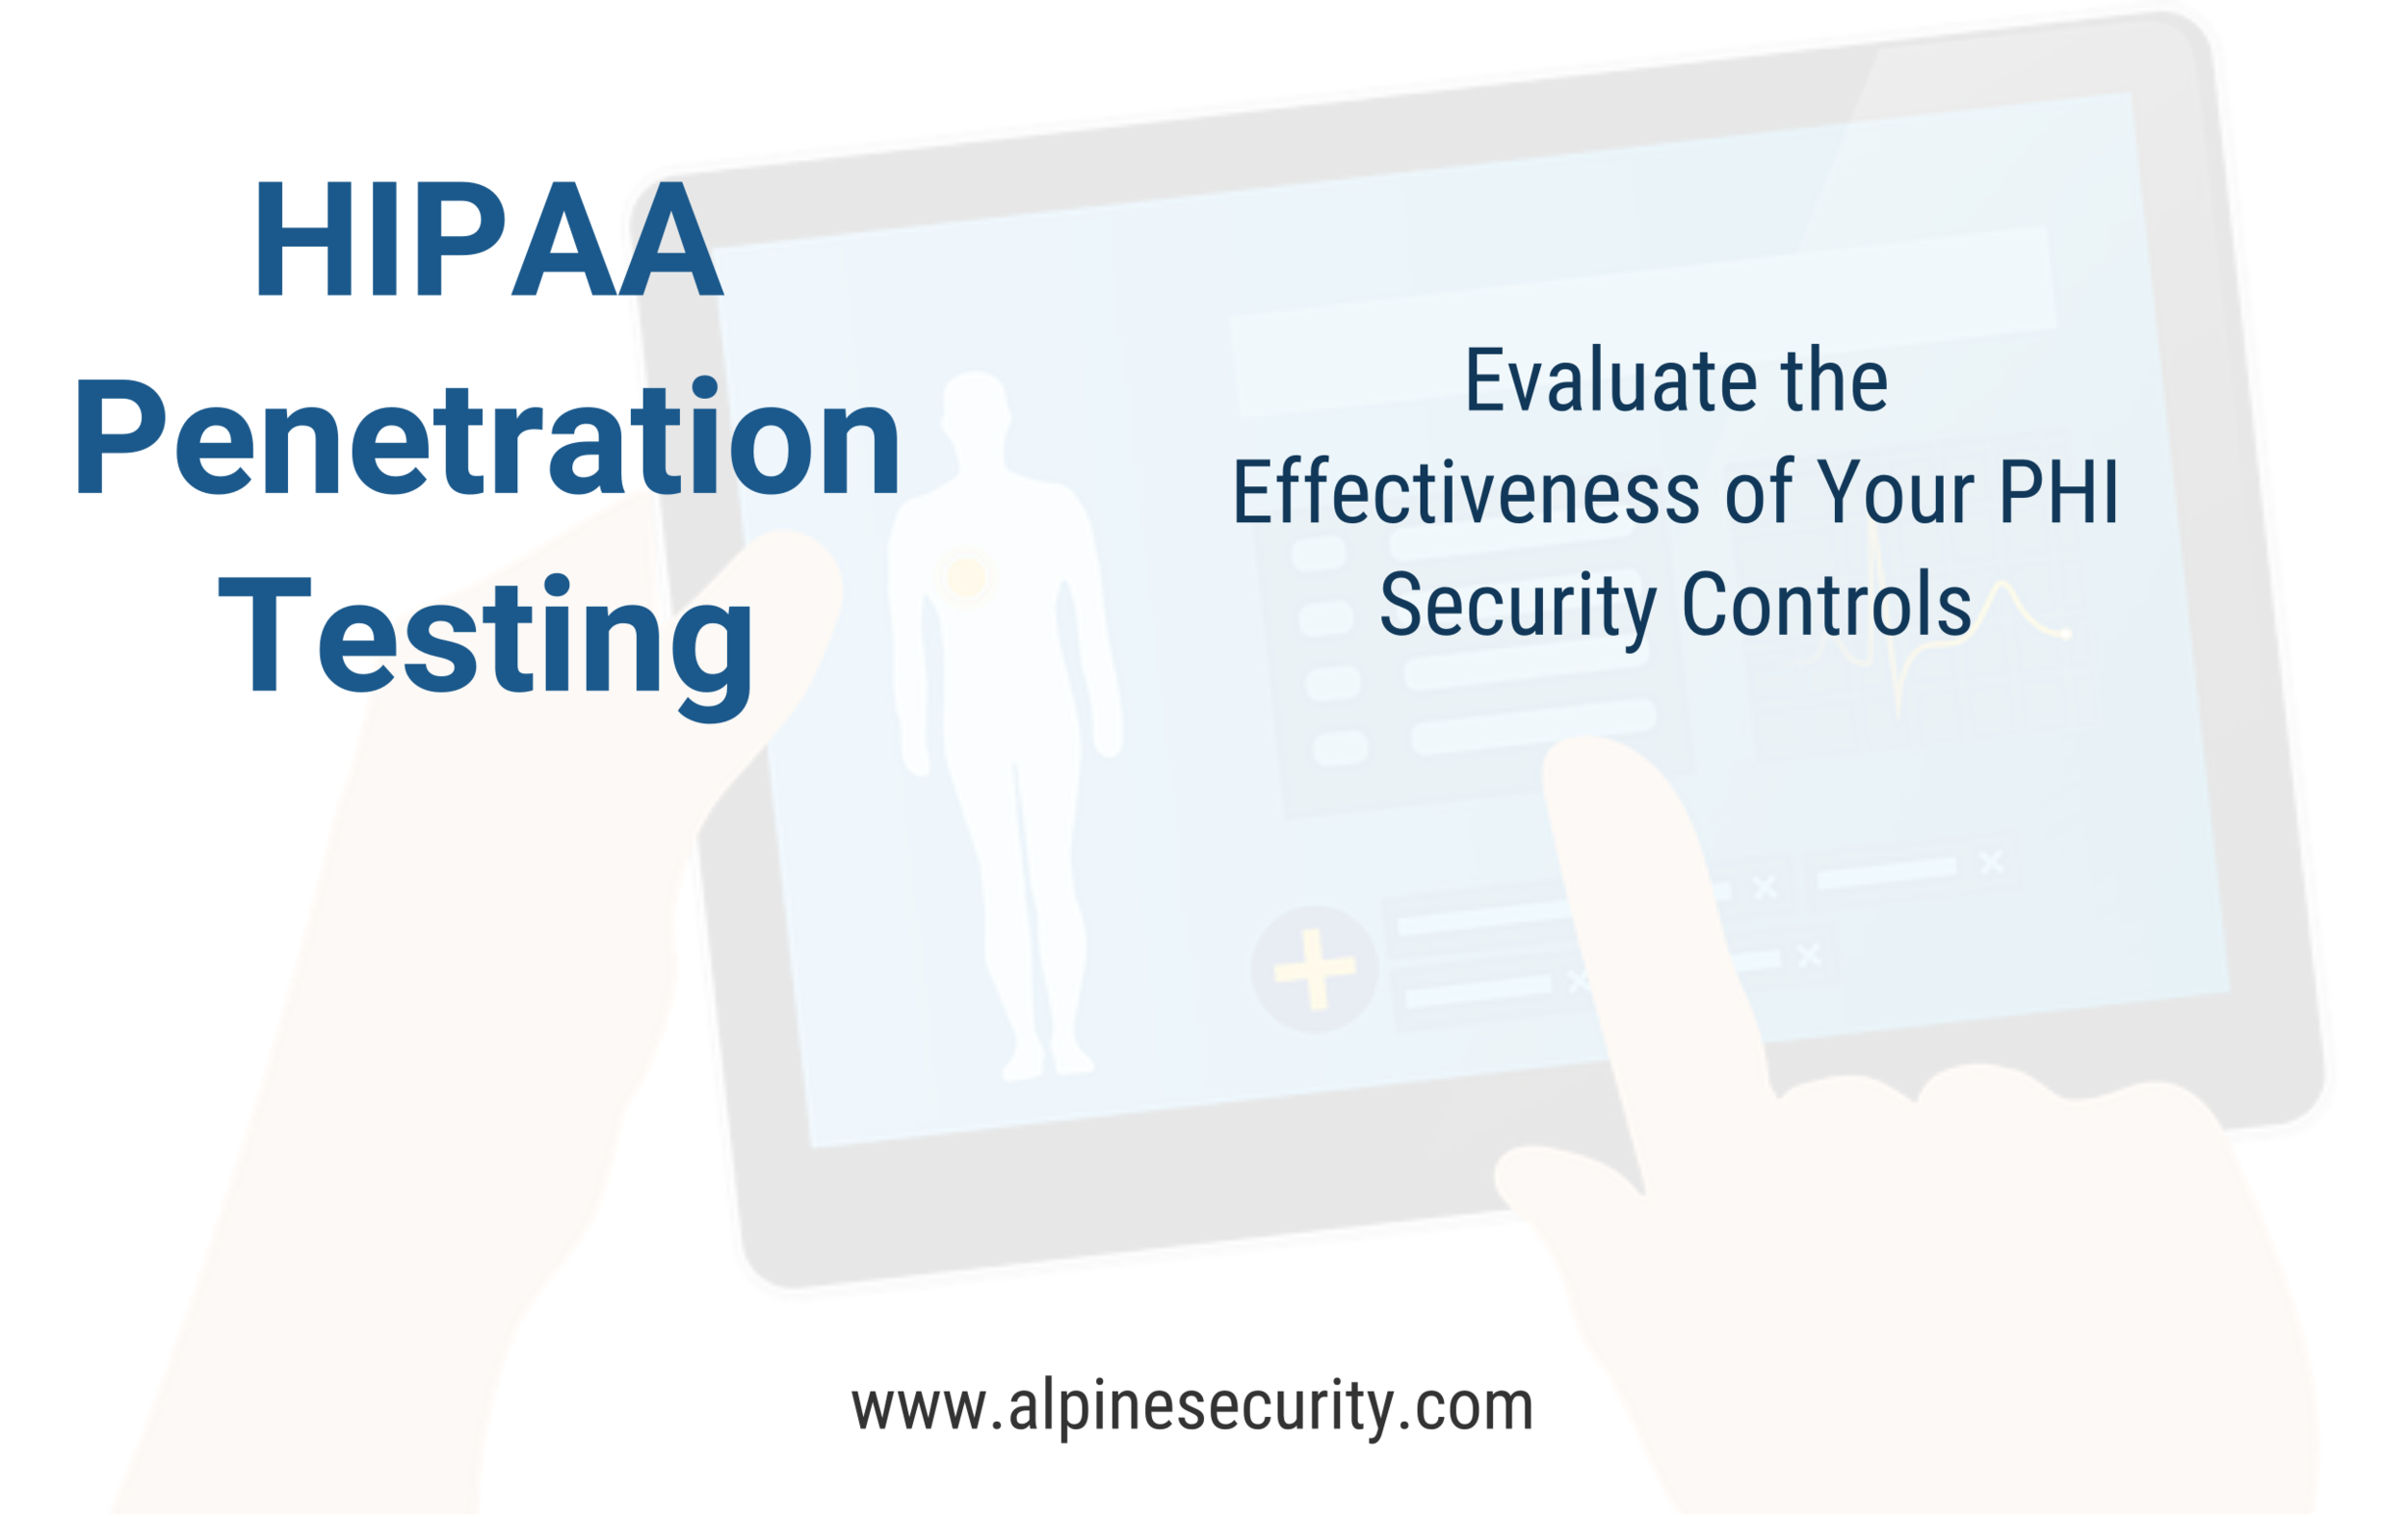 HIPAA Penetration Testing for Compliance